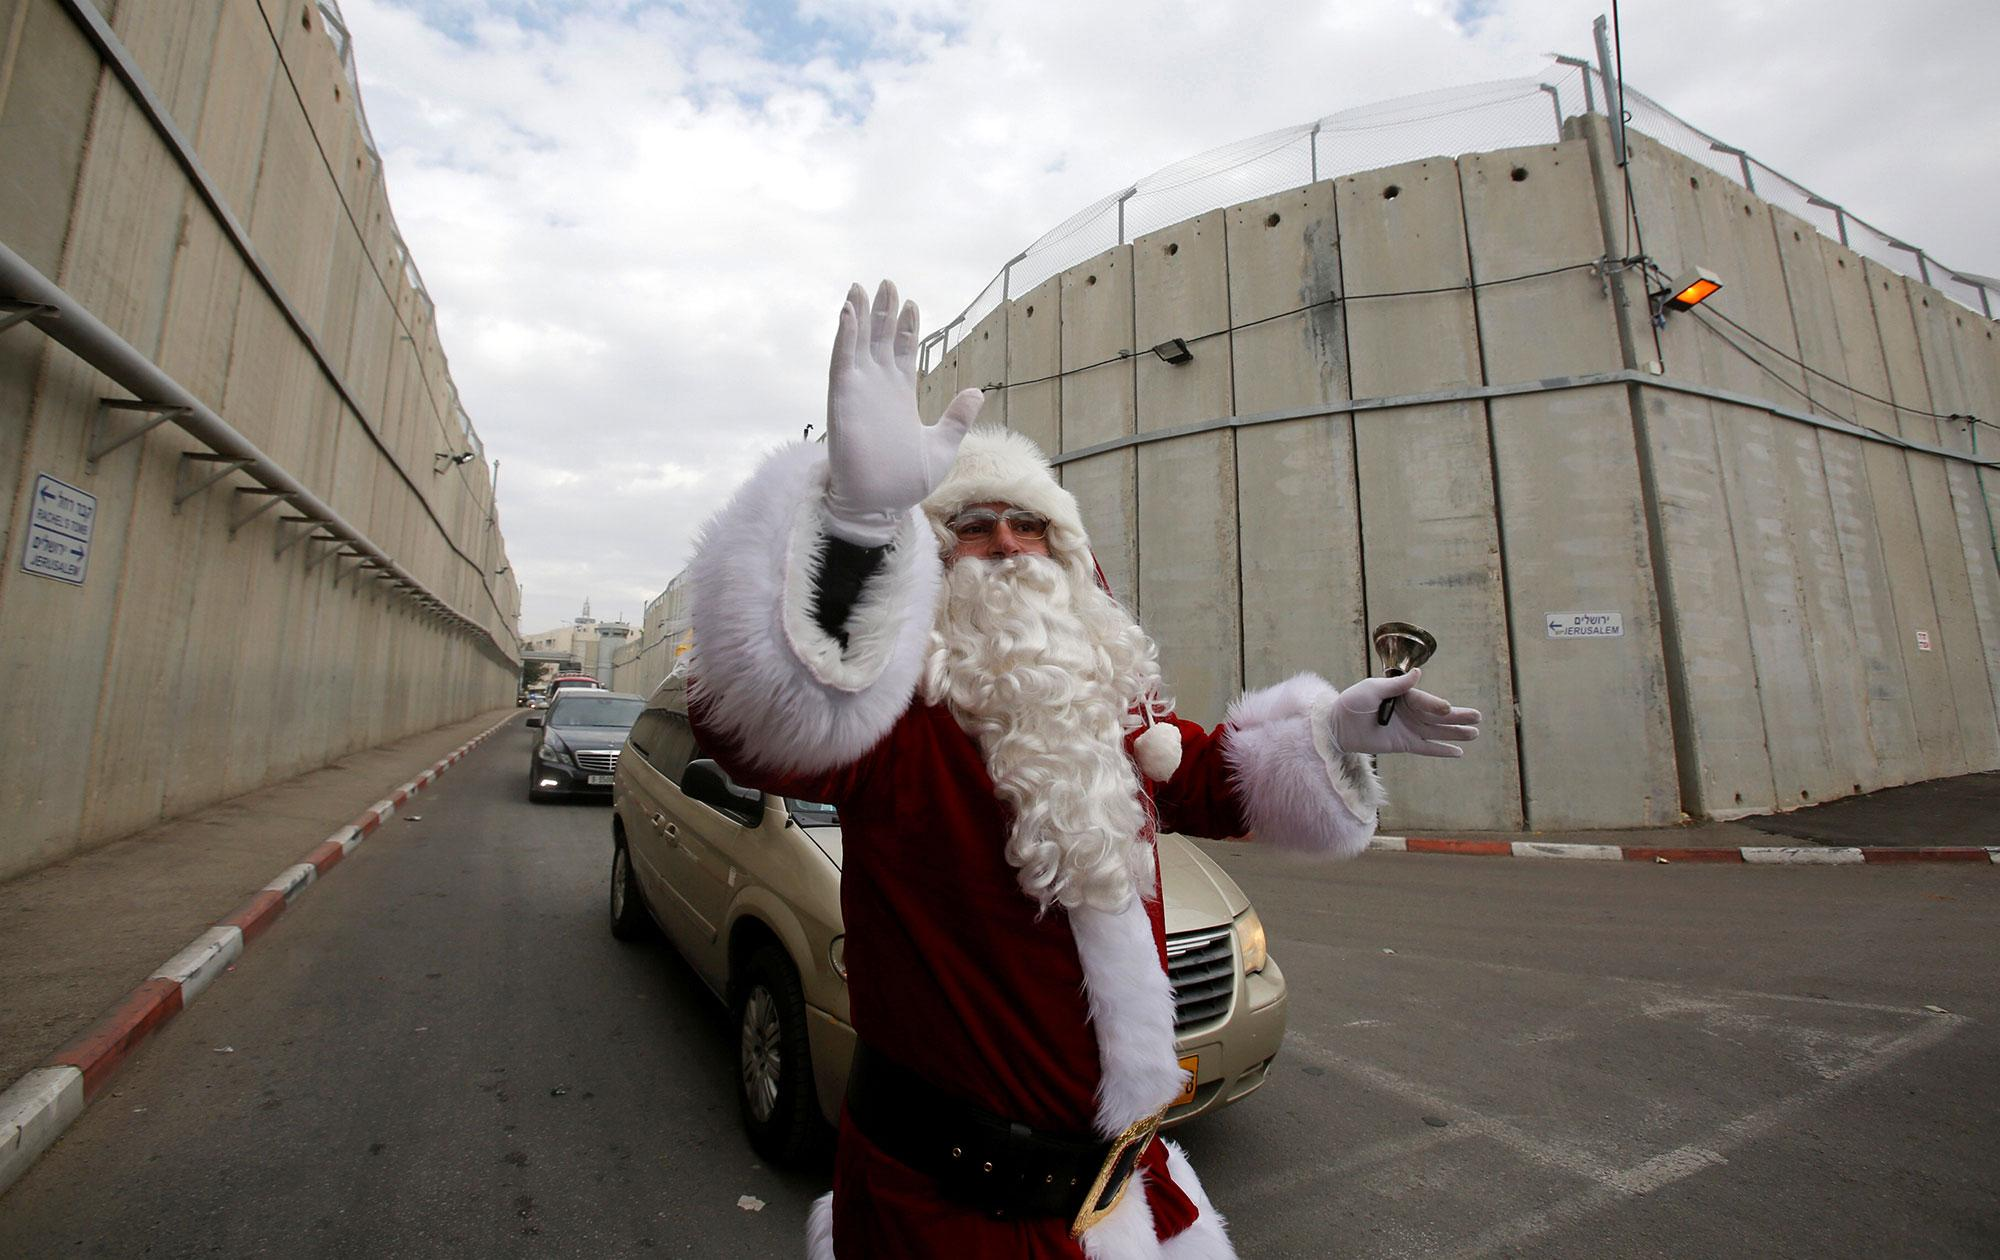 <p>A Palestinian dressed as Santa Claus gestures as the Latin Patriarch of Jerusalem Pierbattista Pizzaballa arrives through an Israeli checkpoint to attend Christmas celebrations, in the West Bank city of Bethlehem on Dec. 24, 2016. (Photo: Mussa Qawasma/Reuters) </p>